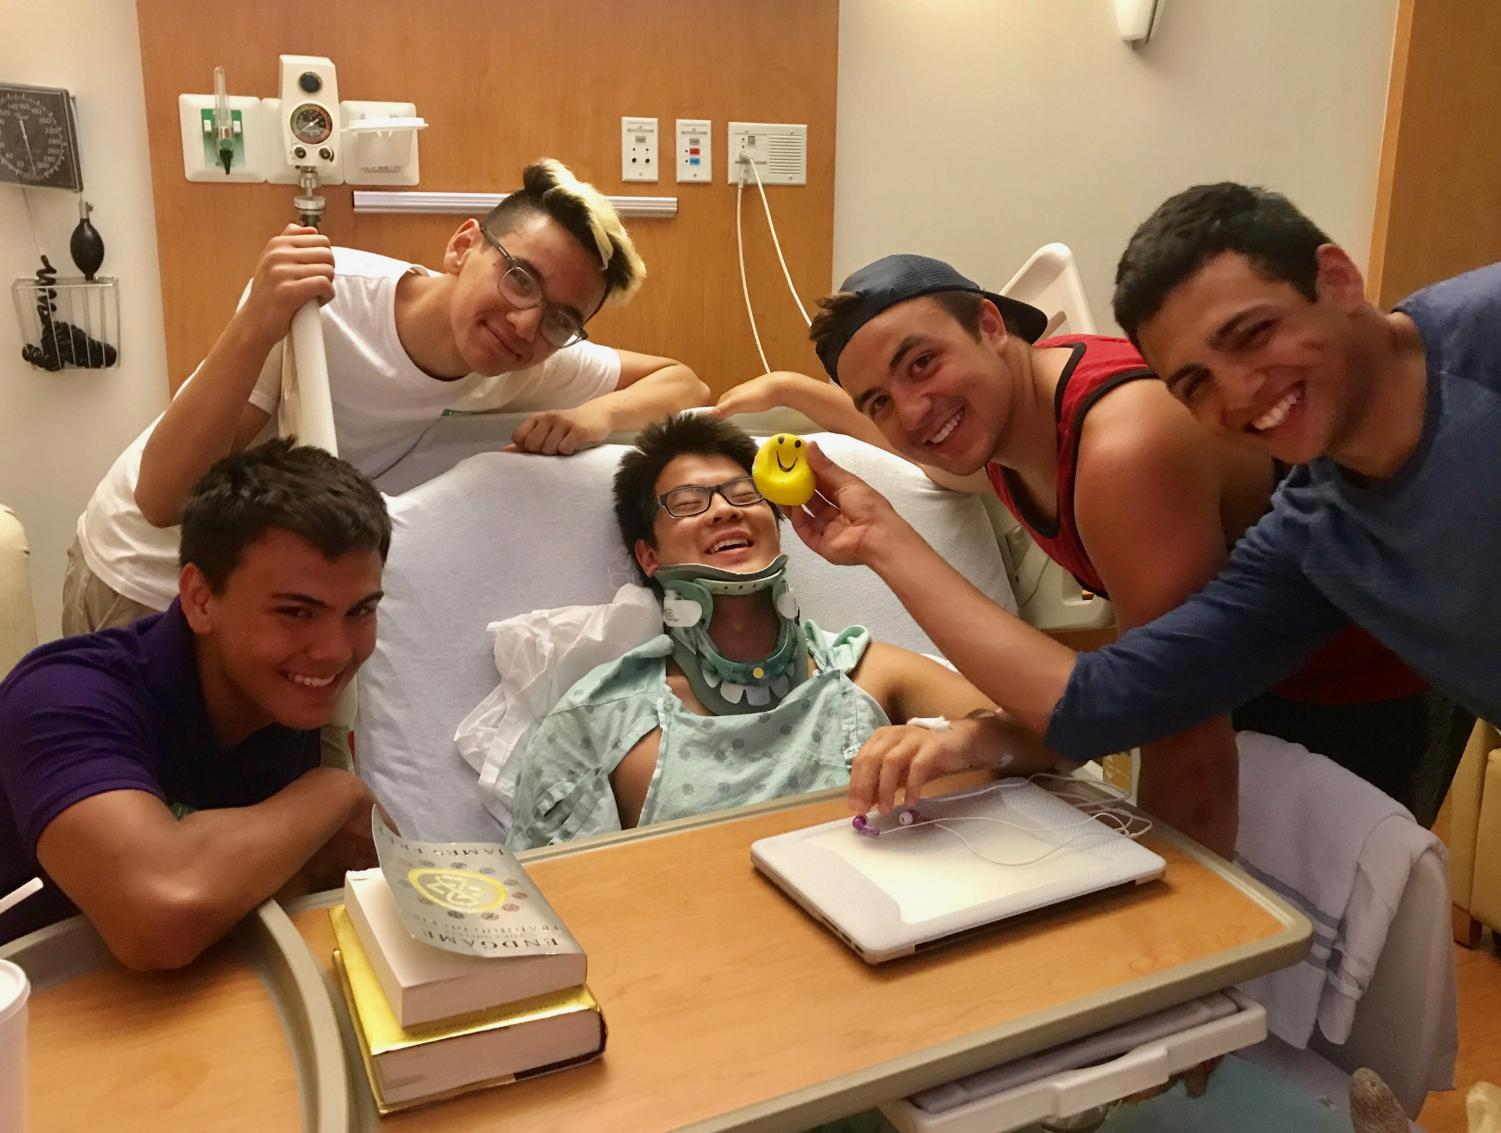 Shimabukuro being visited by his swim teammates in the hospital.